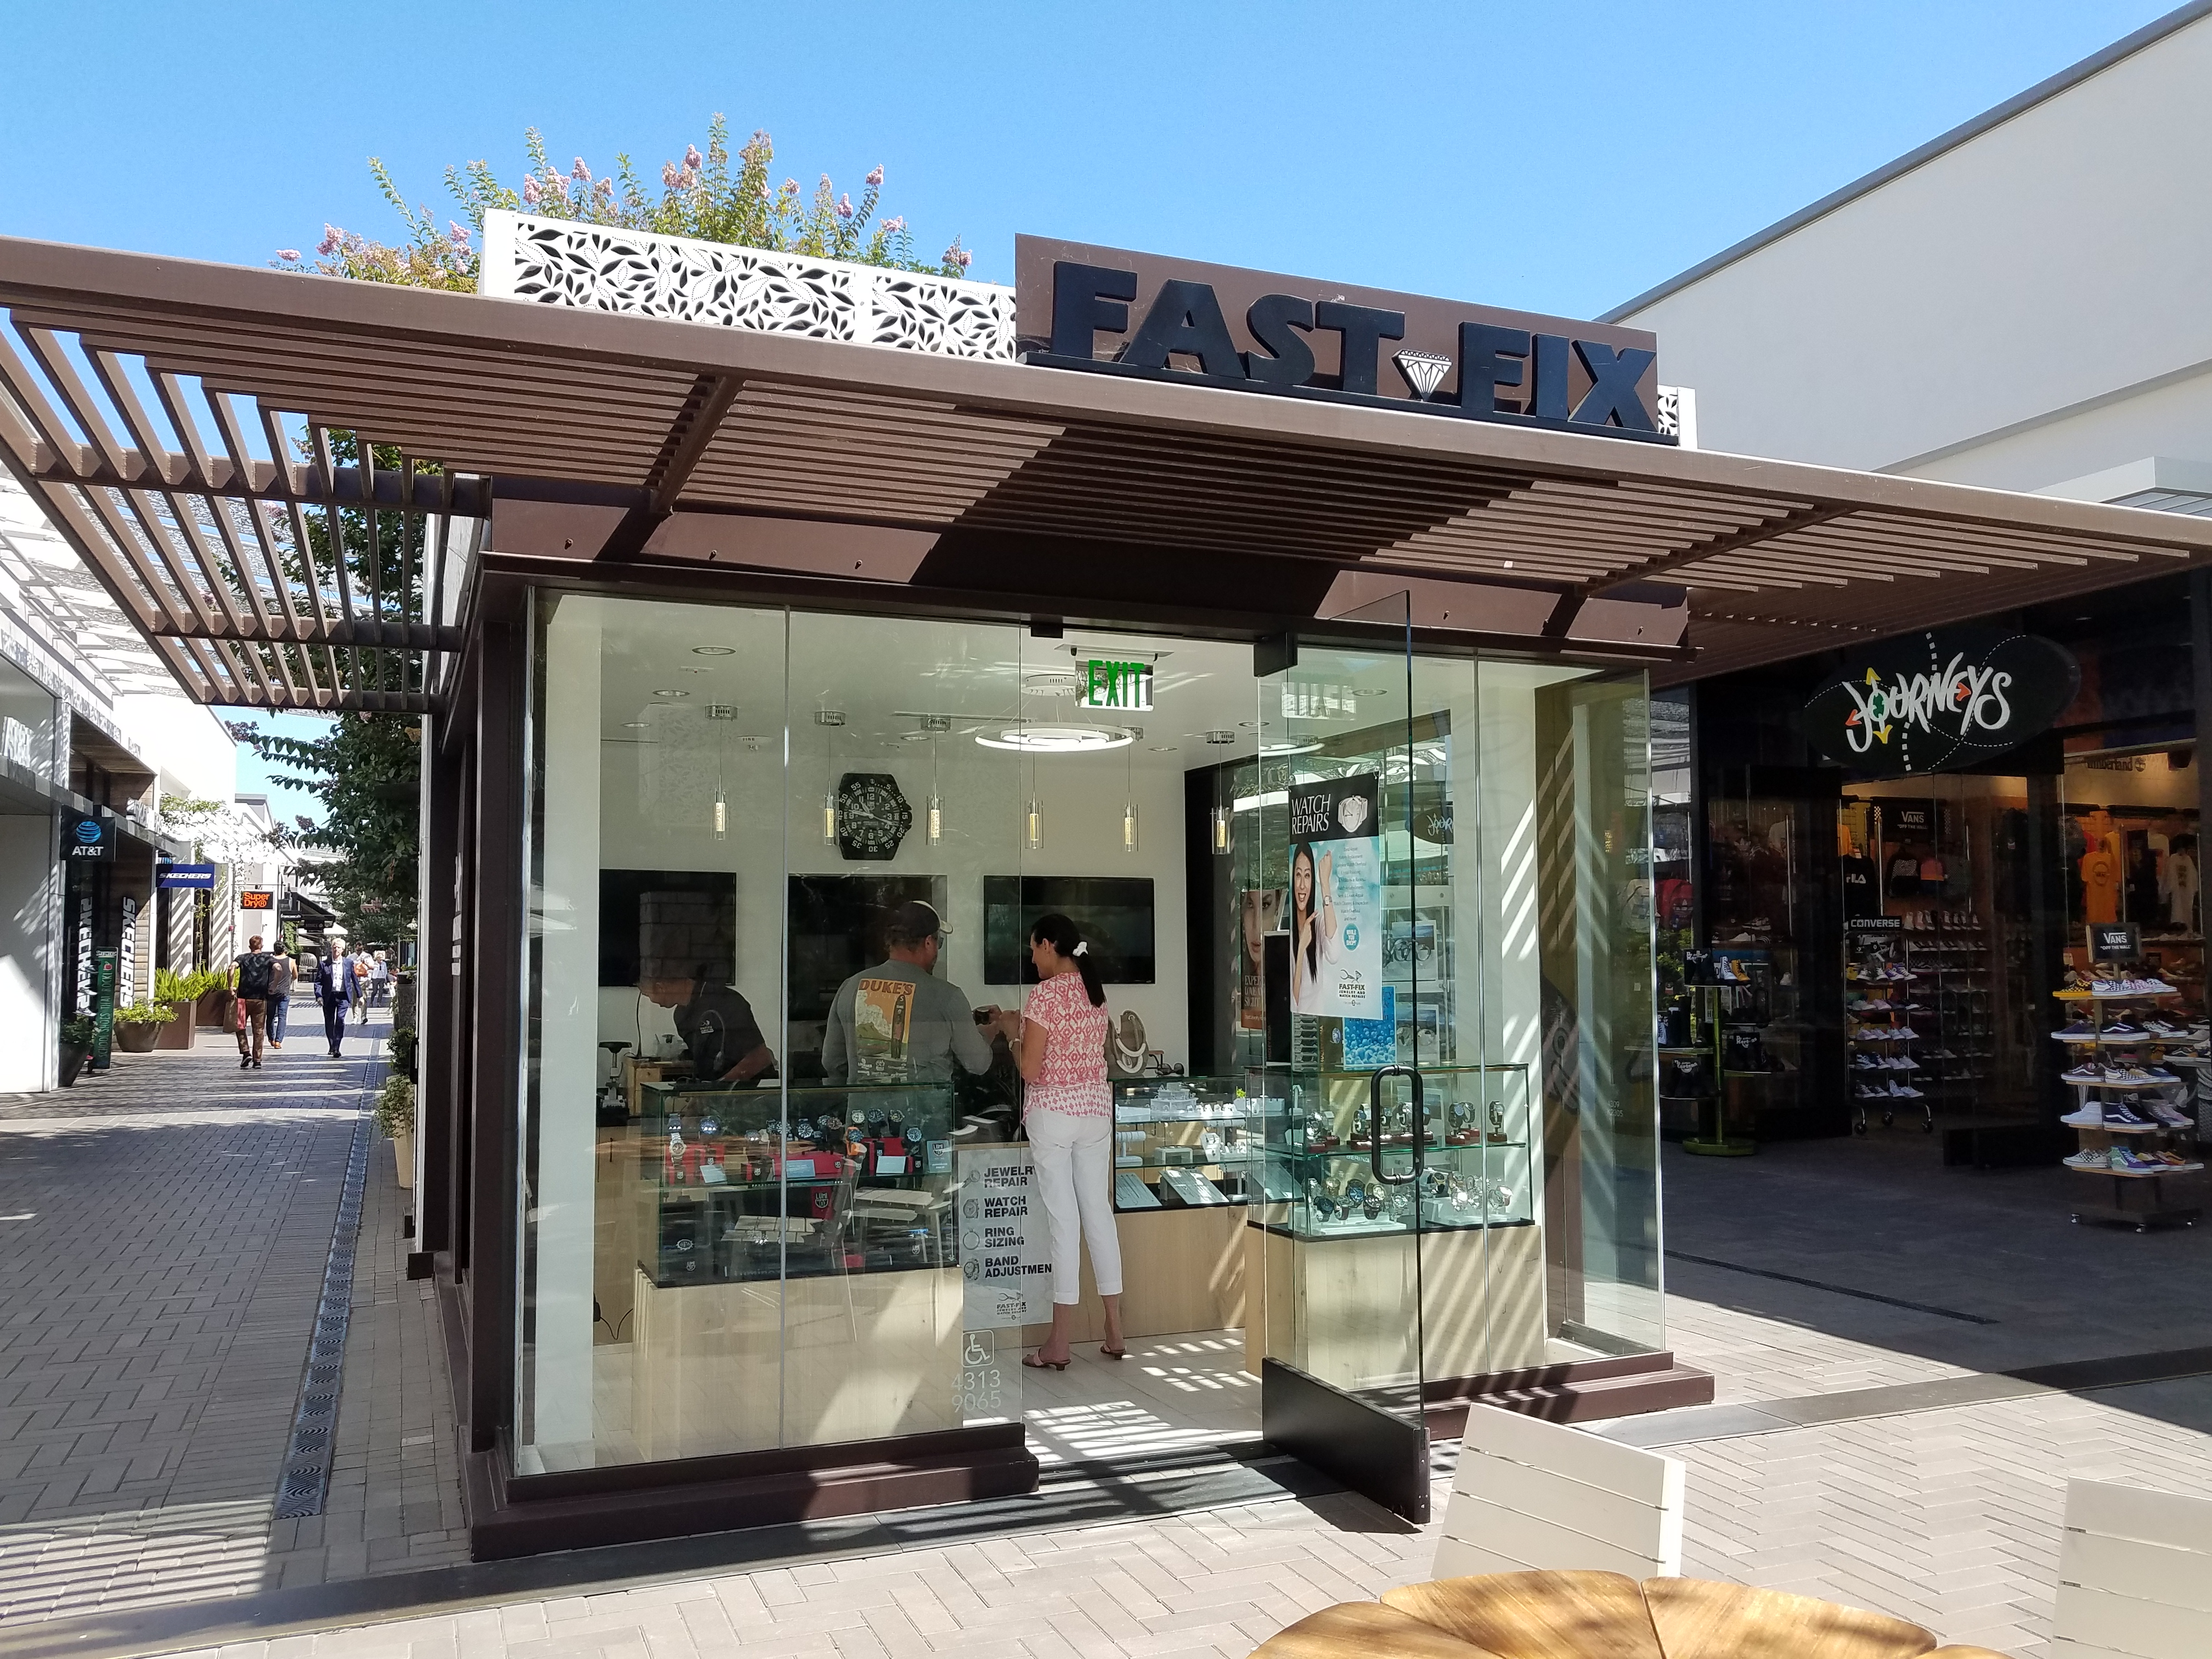 Fast-Fix Jewelry and Watch Repairs kiosk. Picture of its exterior showing a glass front with wood frame and clear view of the front desk and jewelry display.